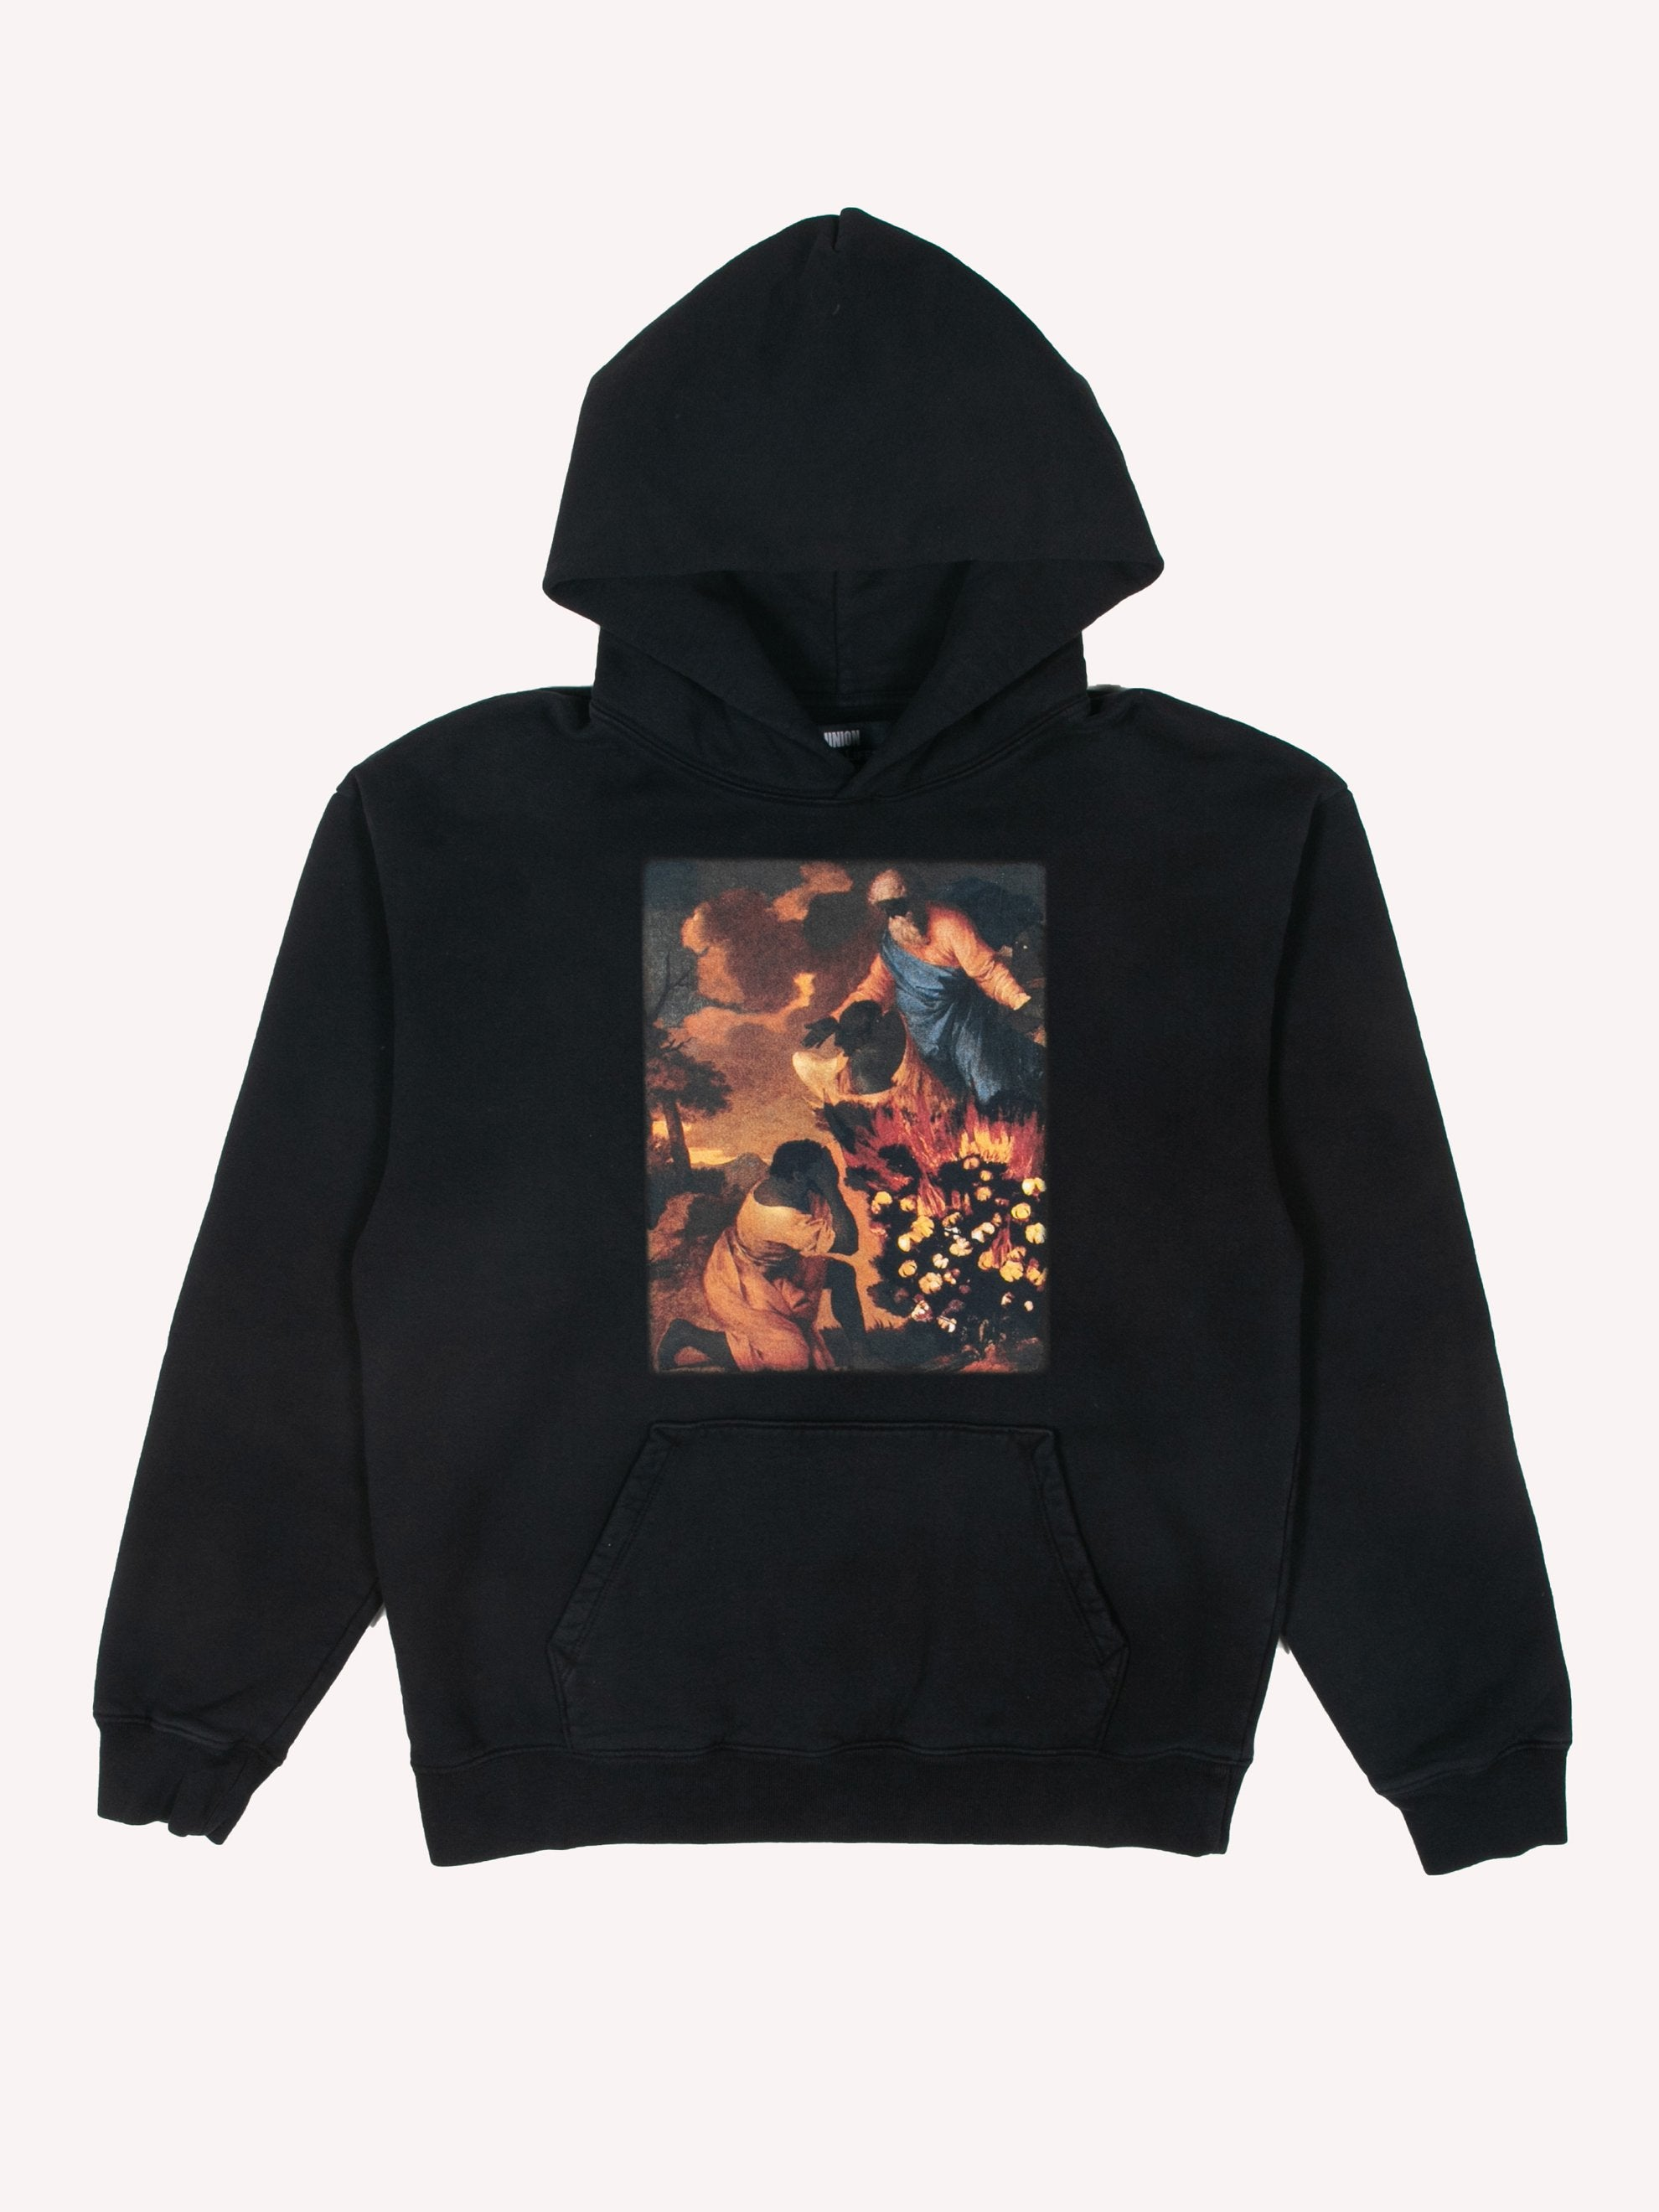 Black Denim Tears x Eco Graphic Hooded Sweatshirt 1